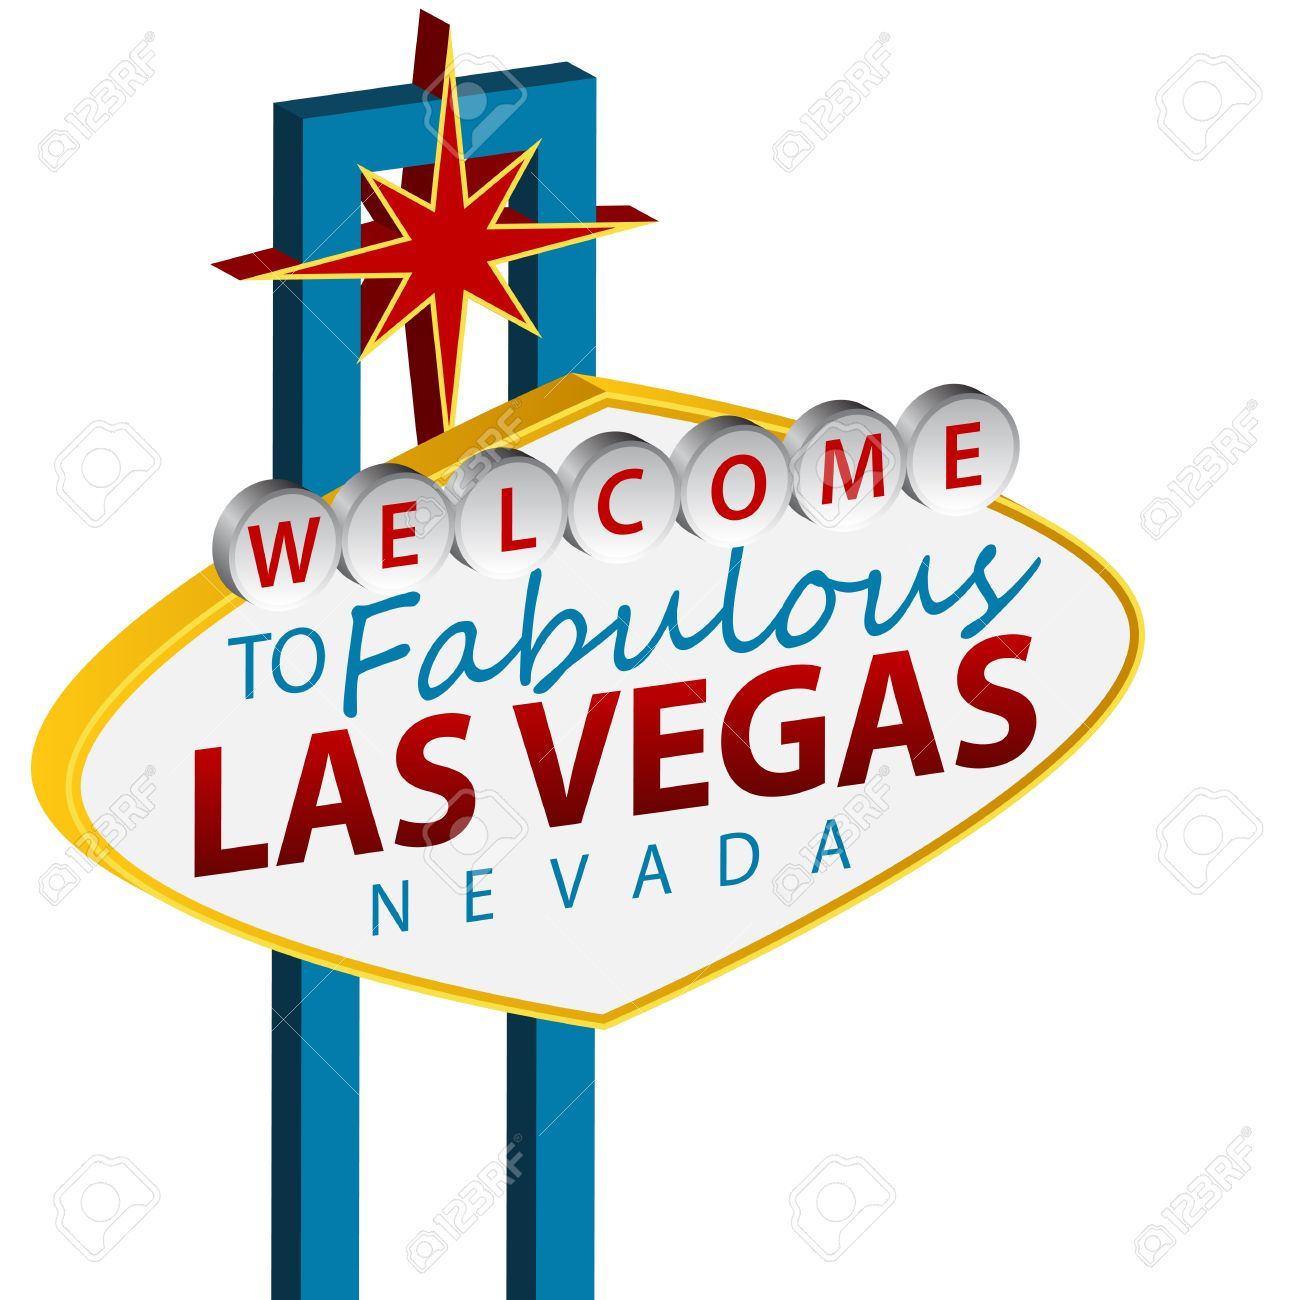 an image of a welcome to las vegas sign royalty free cliparts rh 123rf com las vegas clipart sign las vegas clipart sign